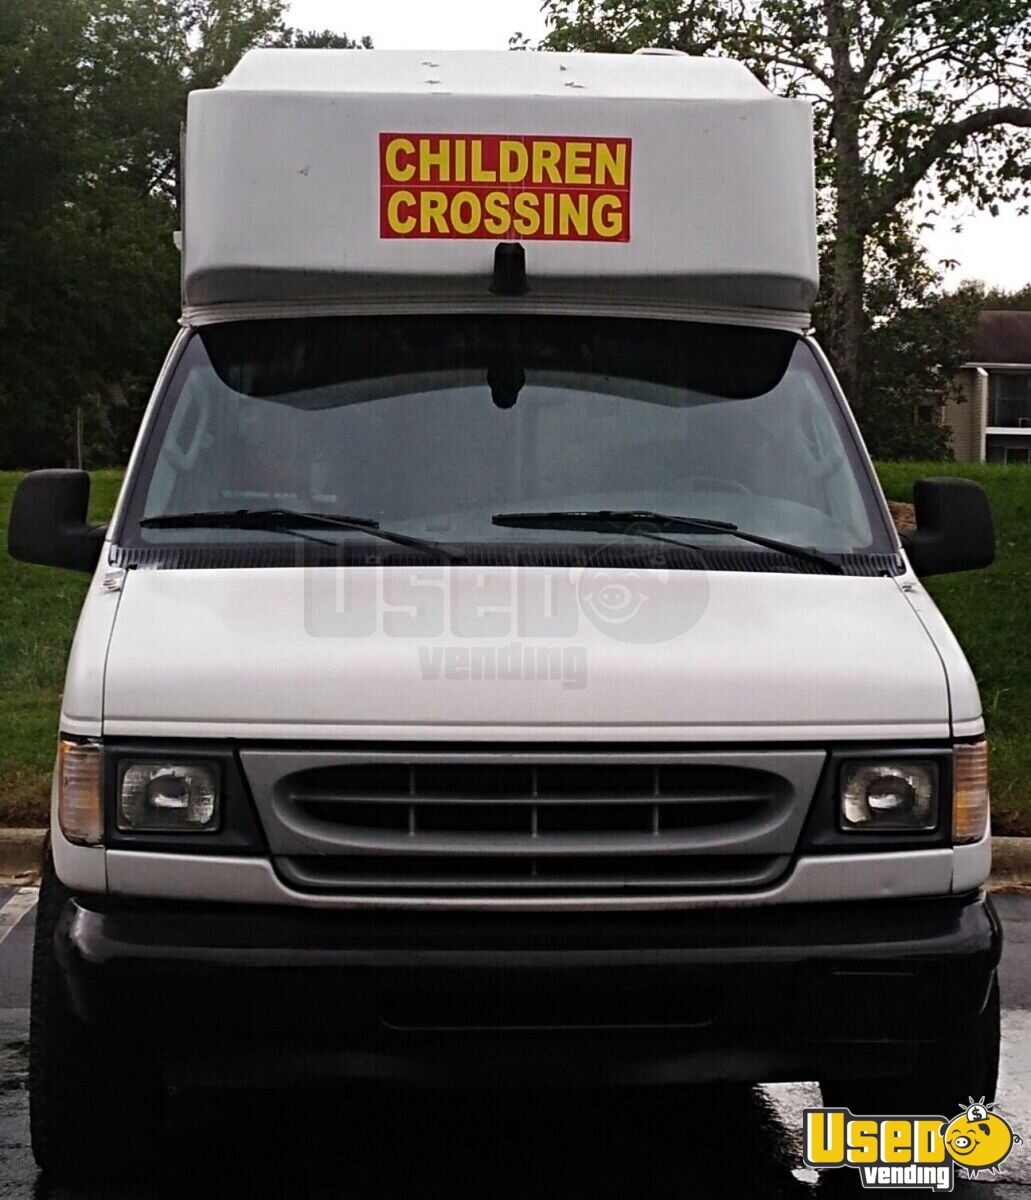 2002 Ford E250 Conversion All-purpose Food Truck Deep Freezer North Carolina for Sale - 5